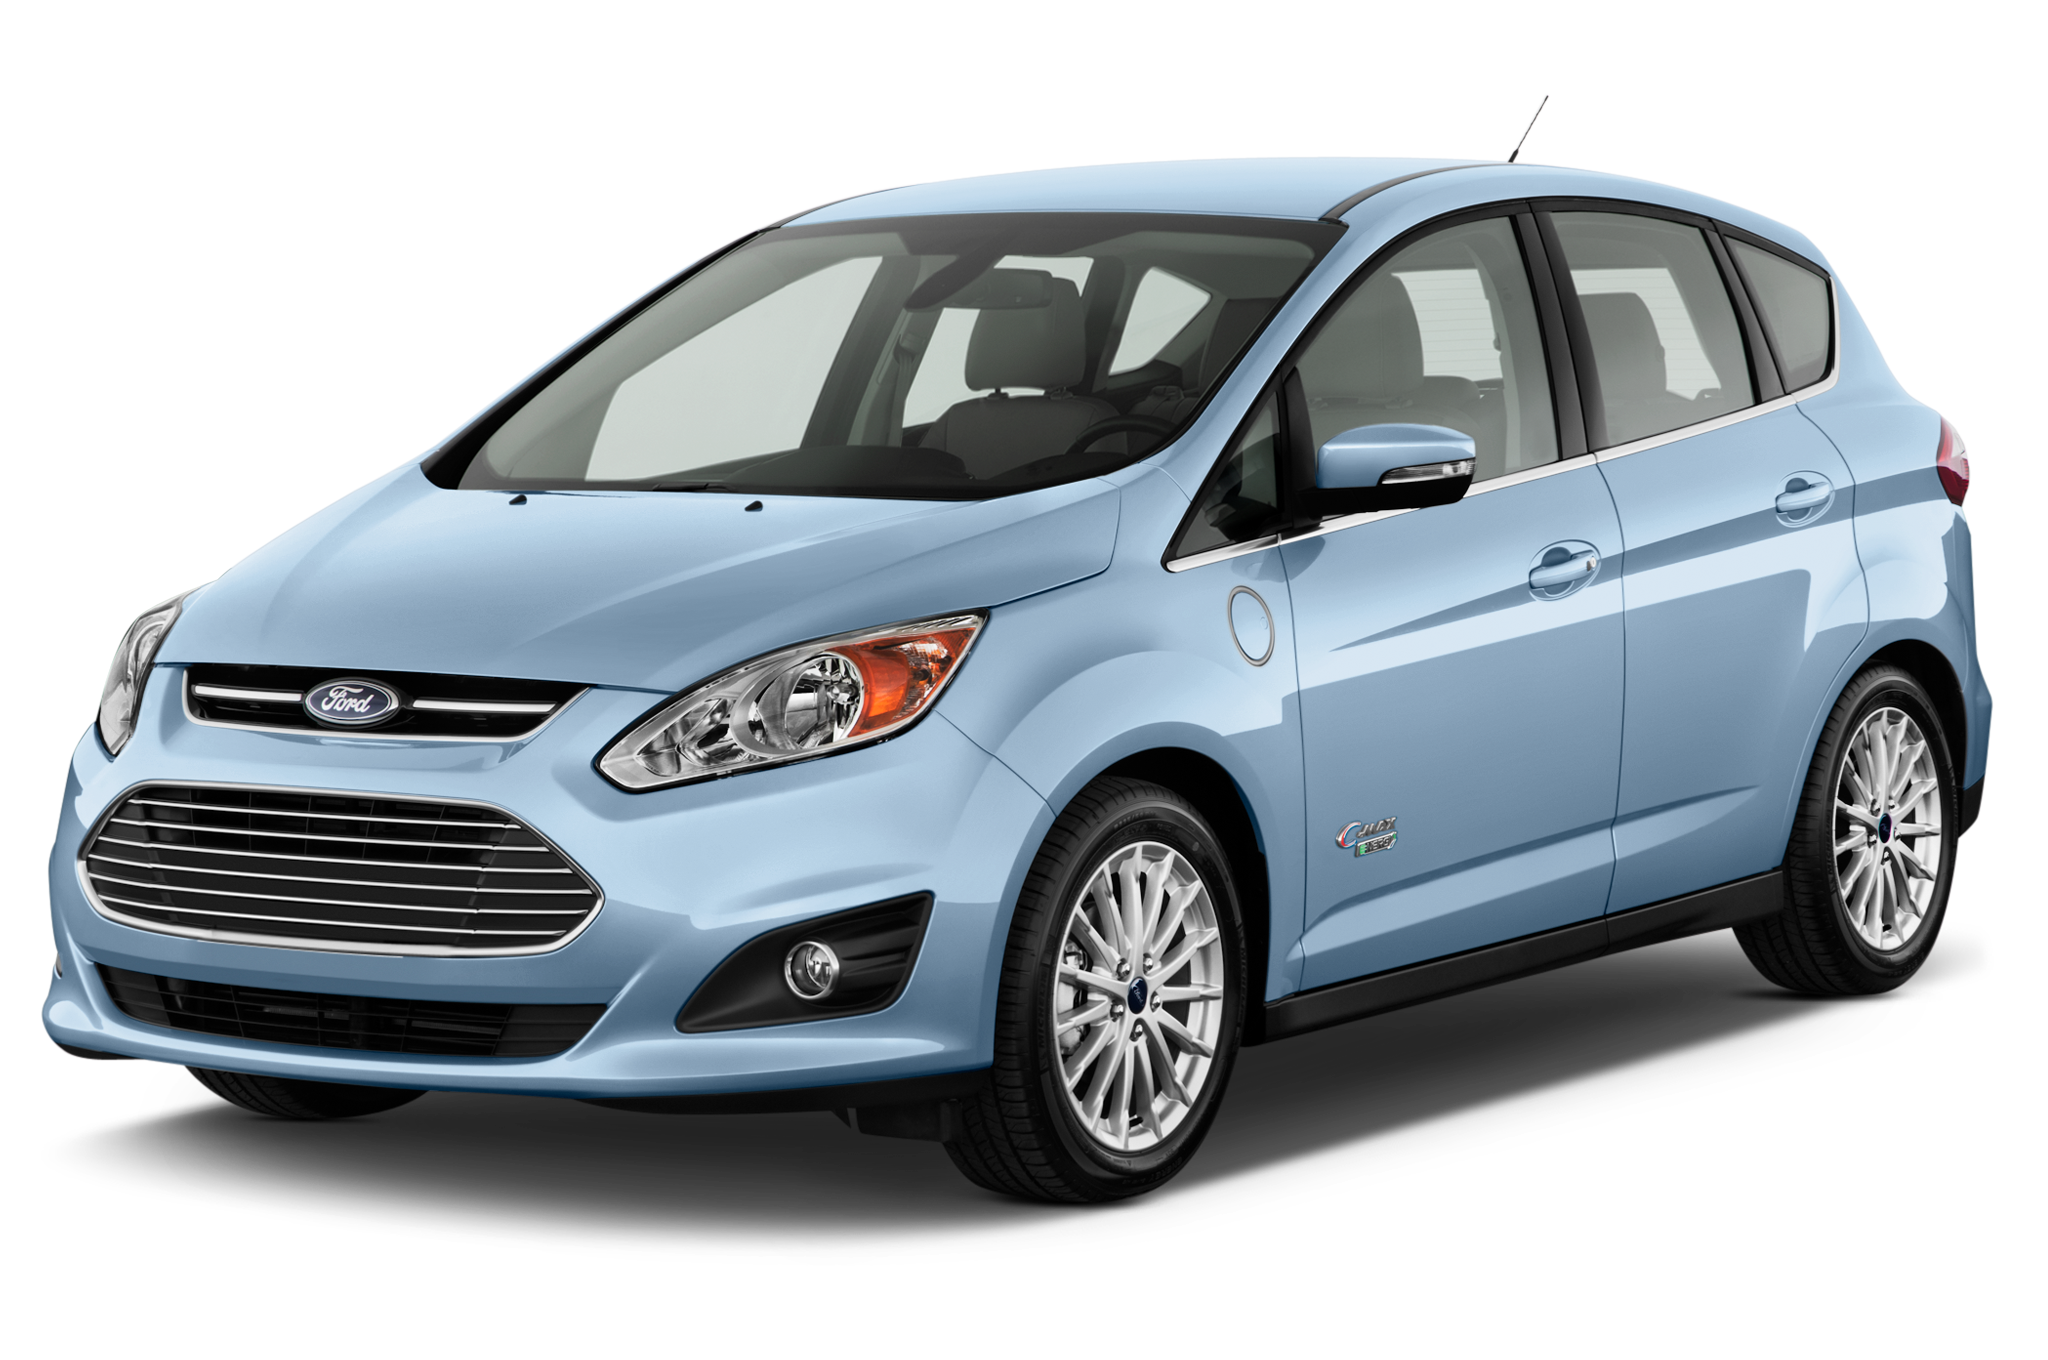 2014 ford c max energi sel sedan angular front ford ecoboost race car sets three new records at daytona Ford Fuse Box Diagram at nearapp.co